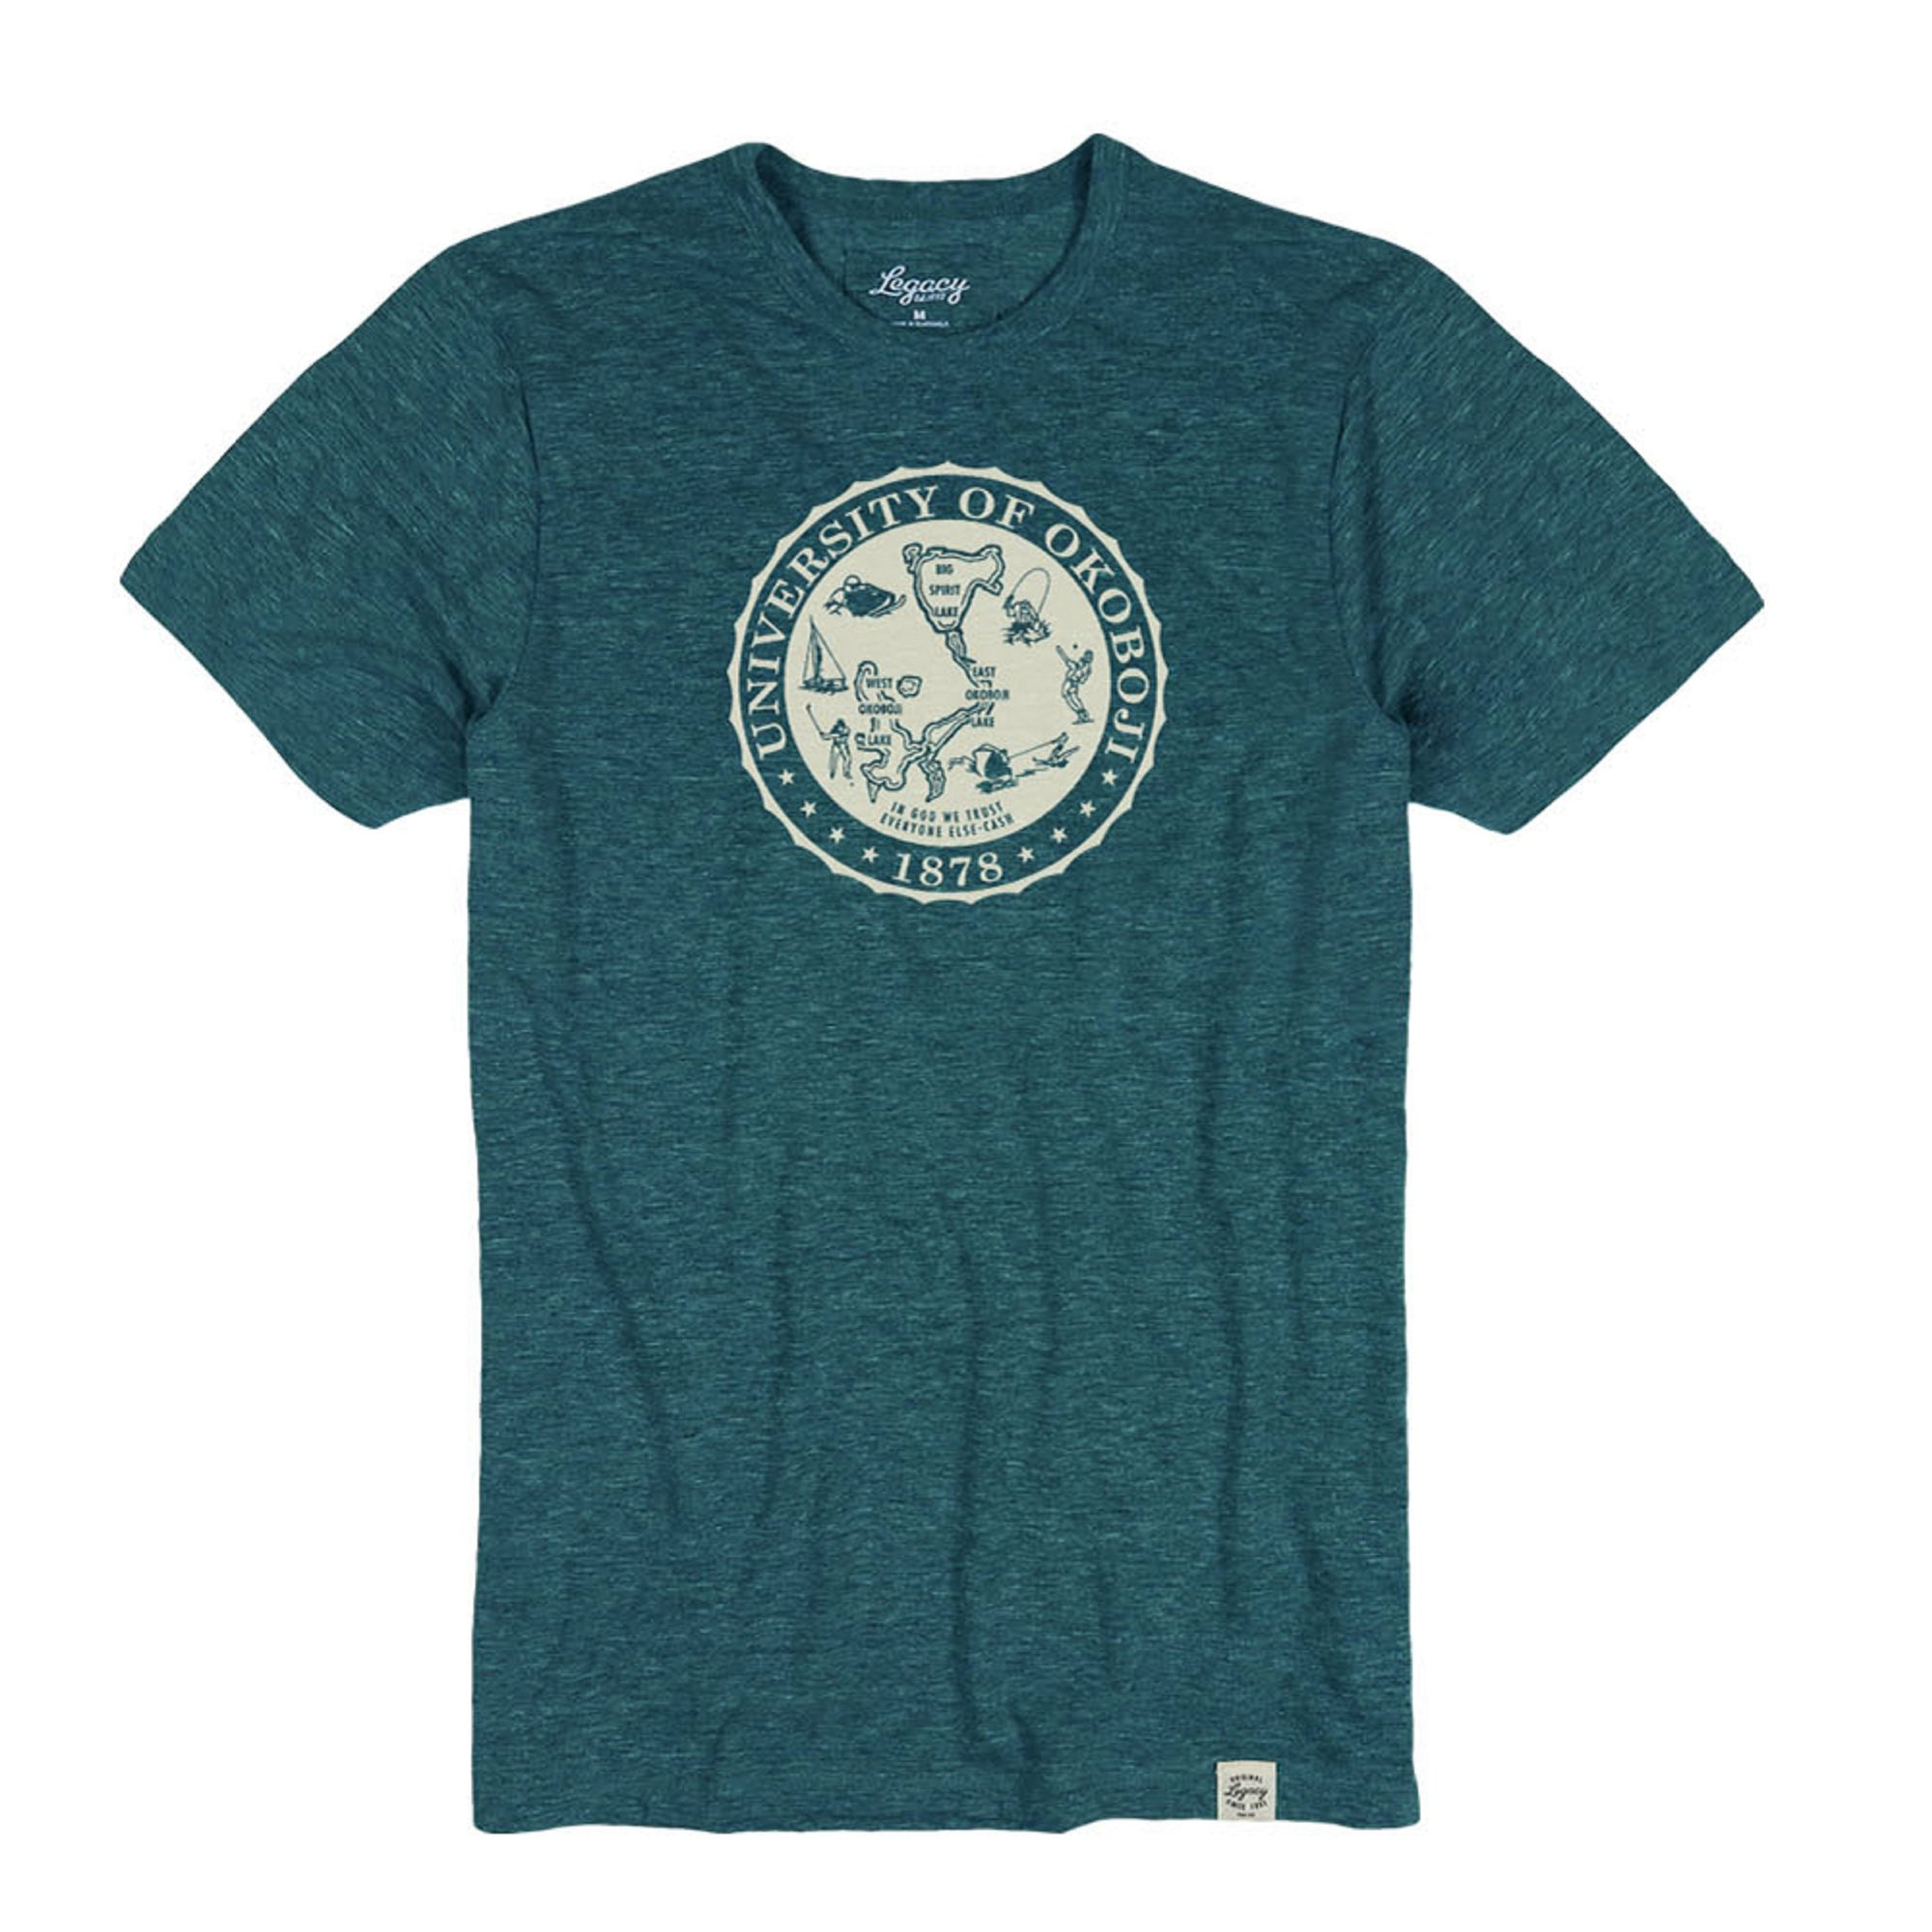 Okoboji Crest In One Tri-Blend Crewneck Tee - Heather Marine